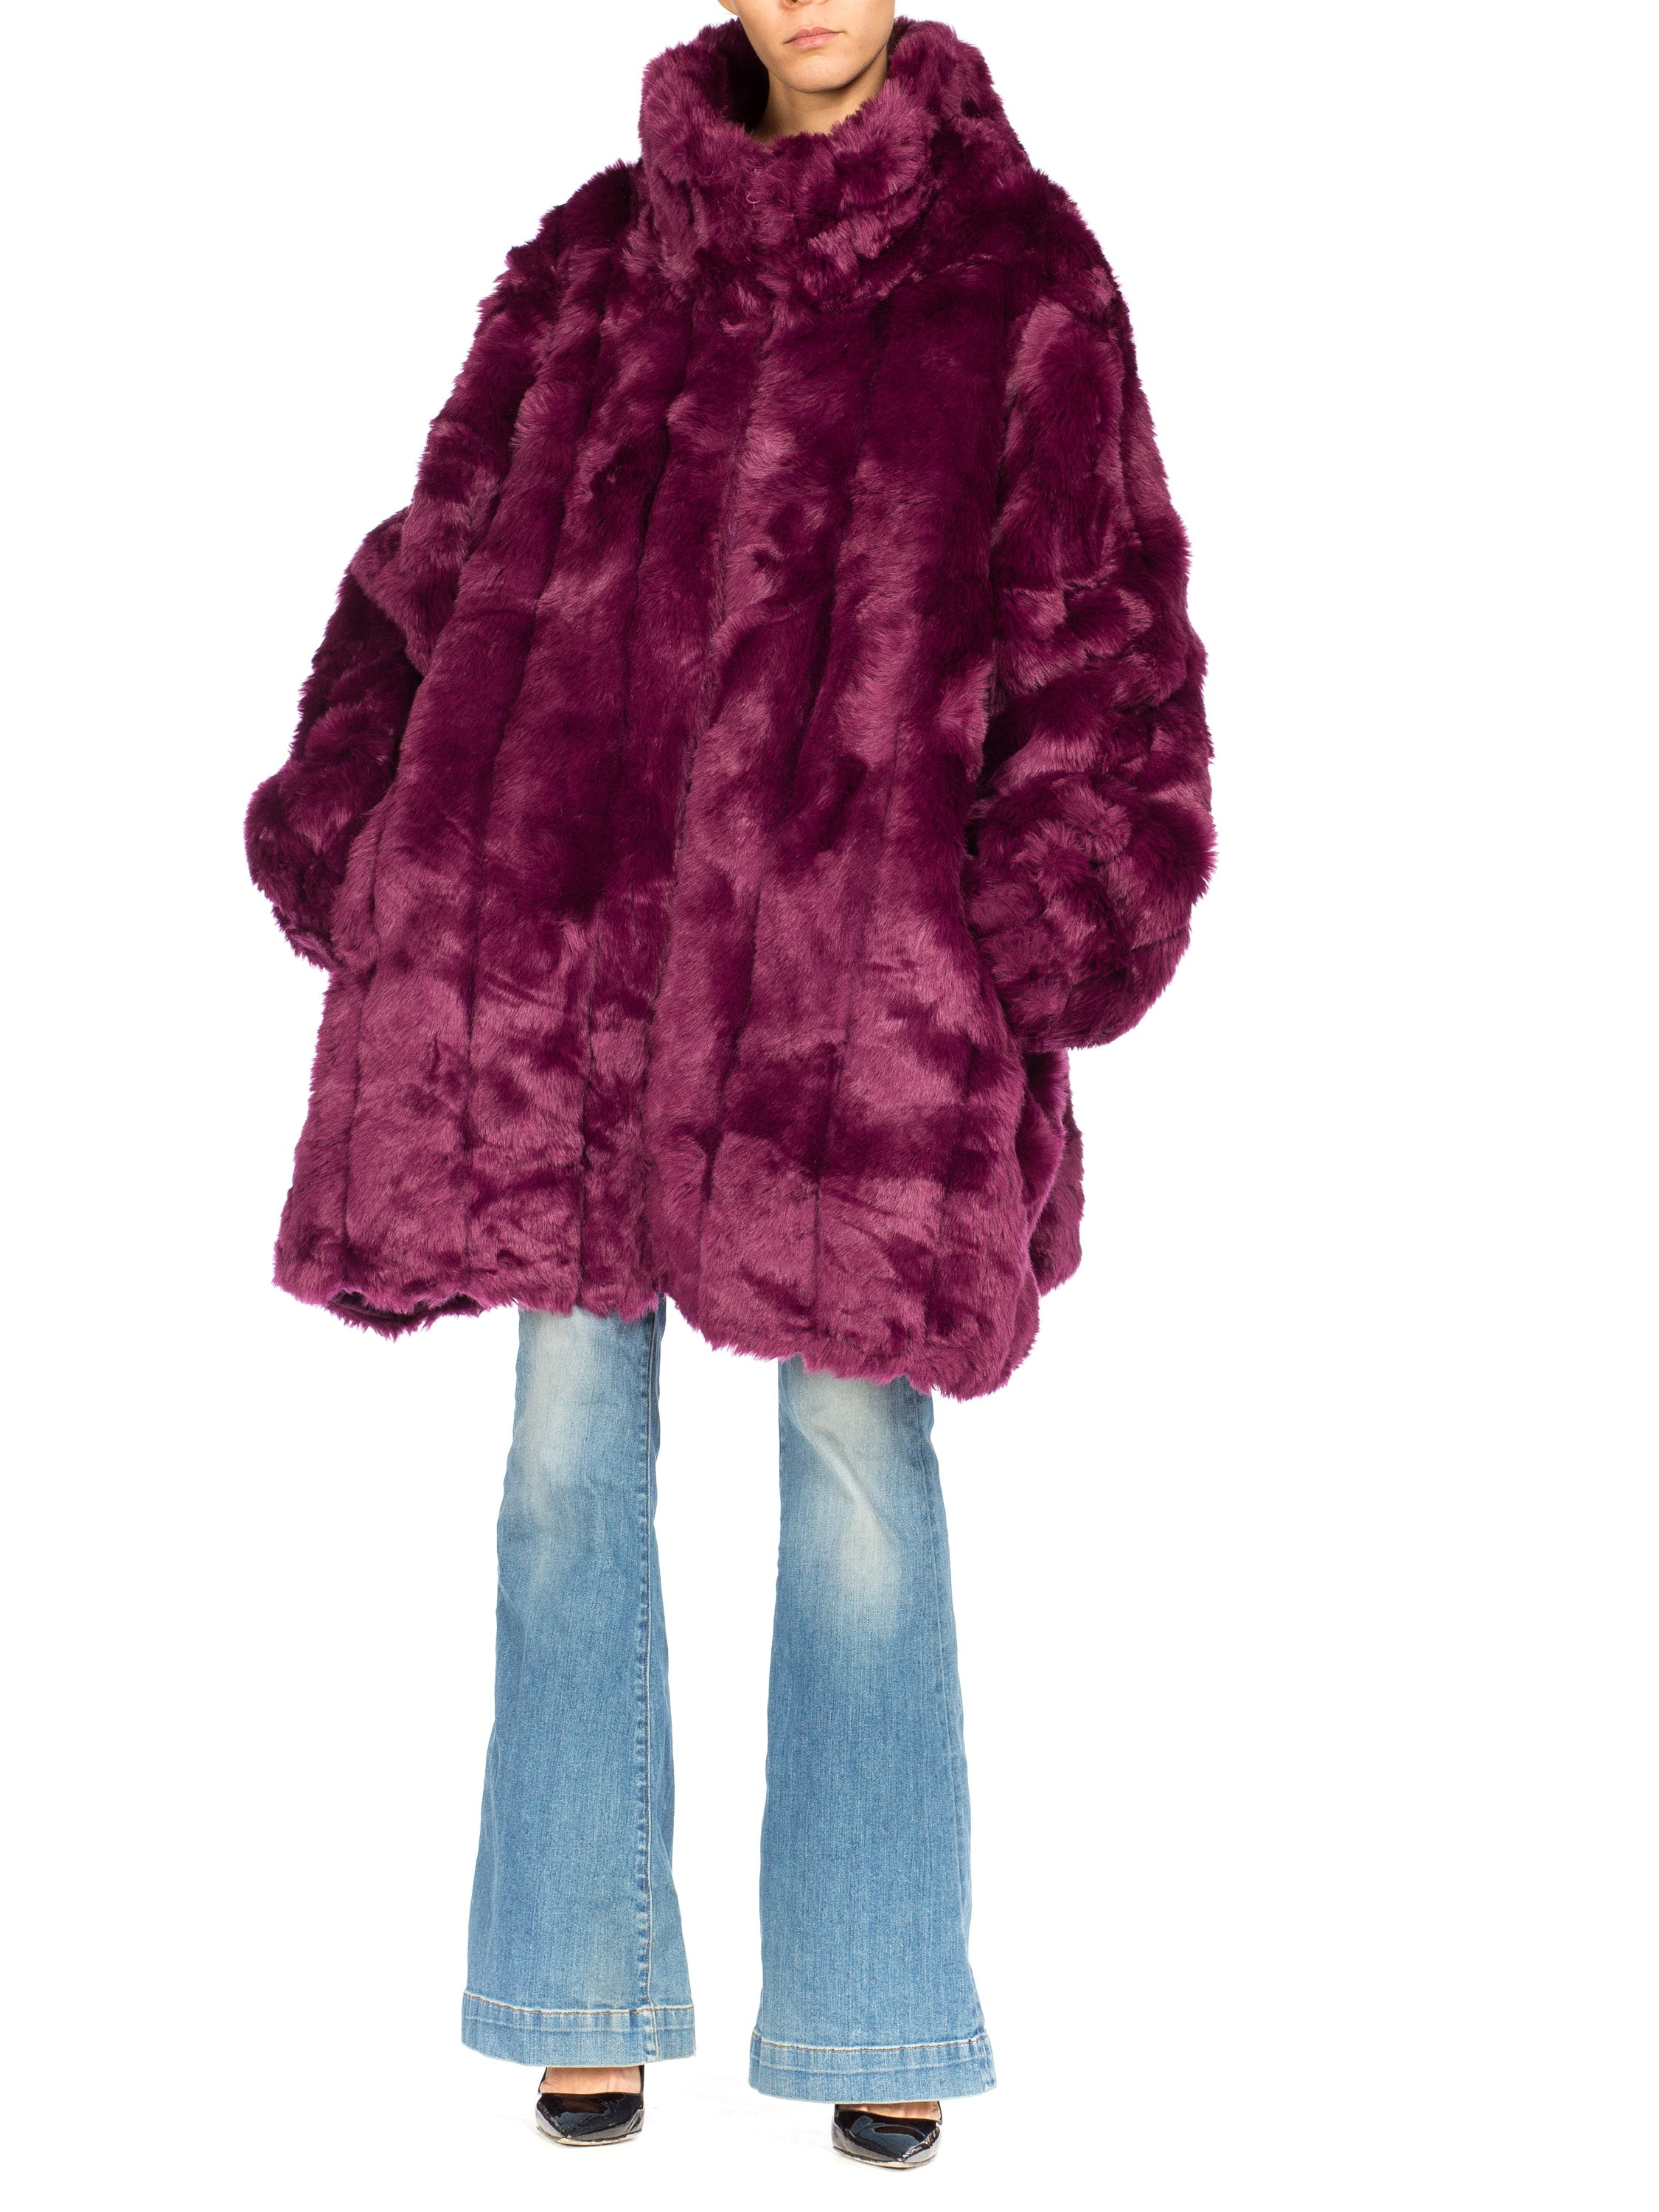 Eggplant Purple Oversized Full Length Faux Fur Coat